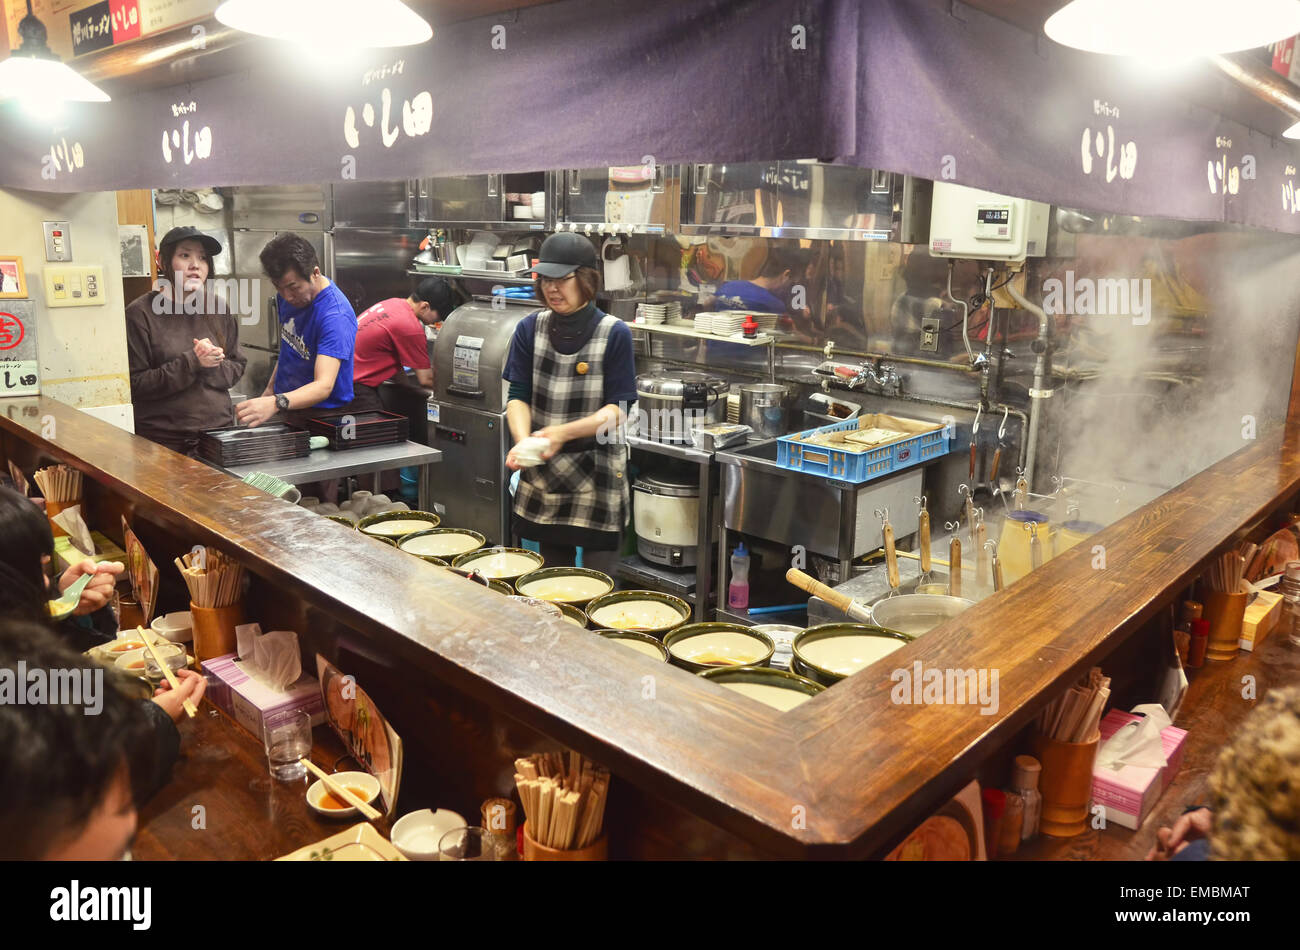 Ramen Stall Stock Photos Ramen Stall Stock Images Alamy